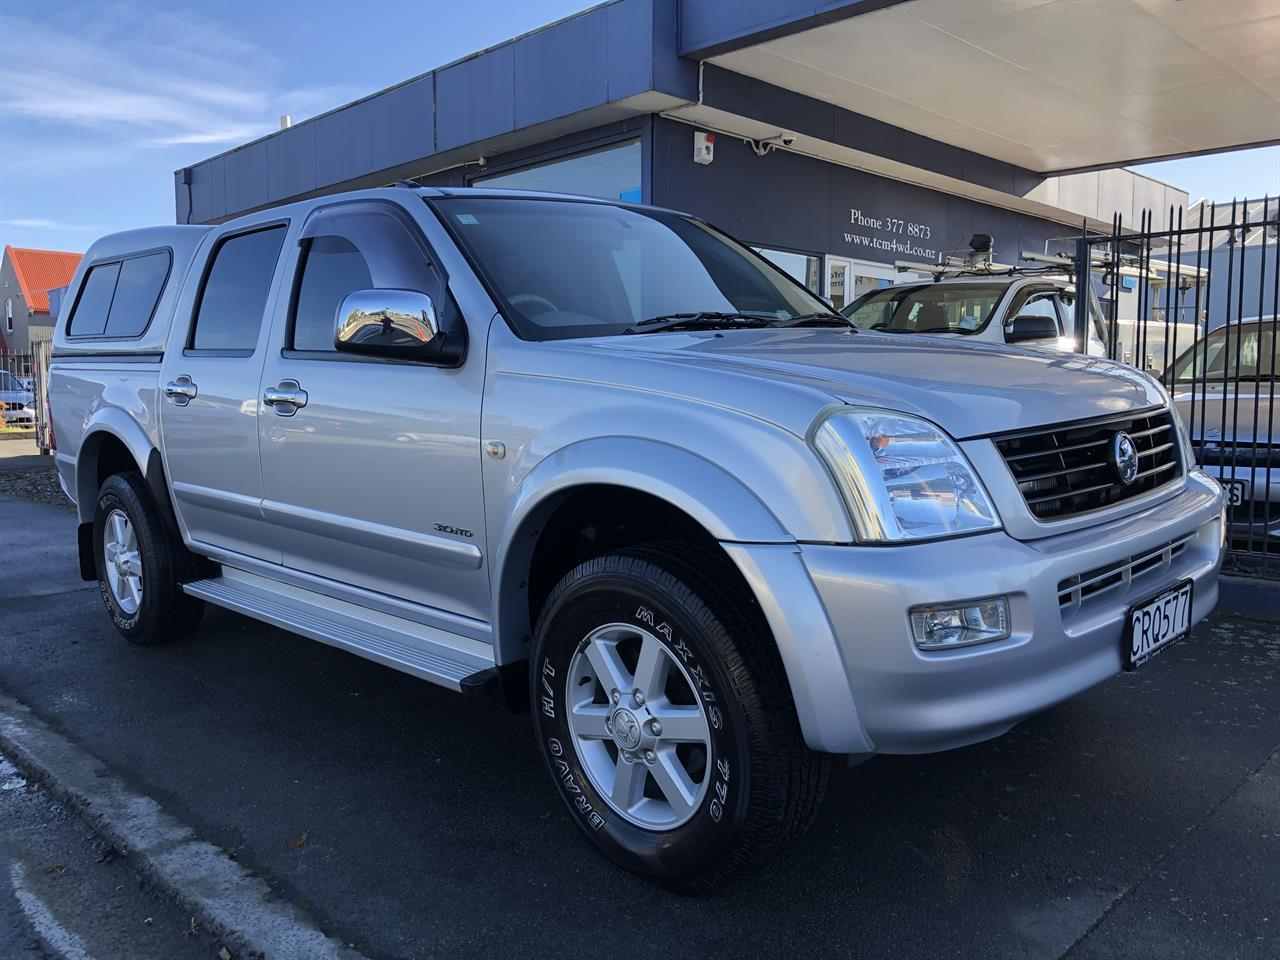 image-0, 2005 Holden Rodeo LT 2WD D/CAB at Christchurch